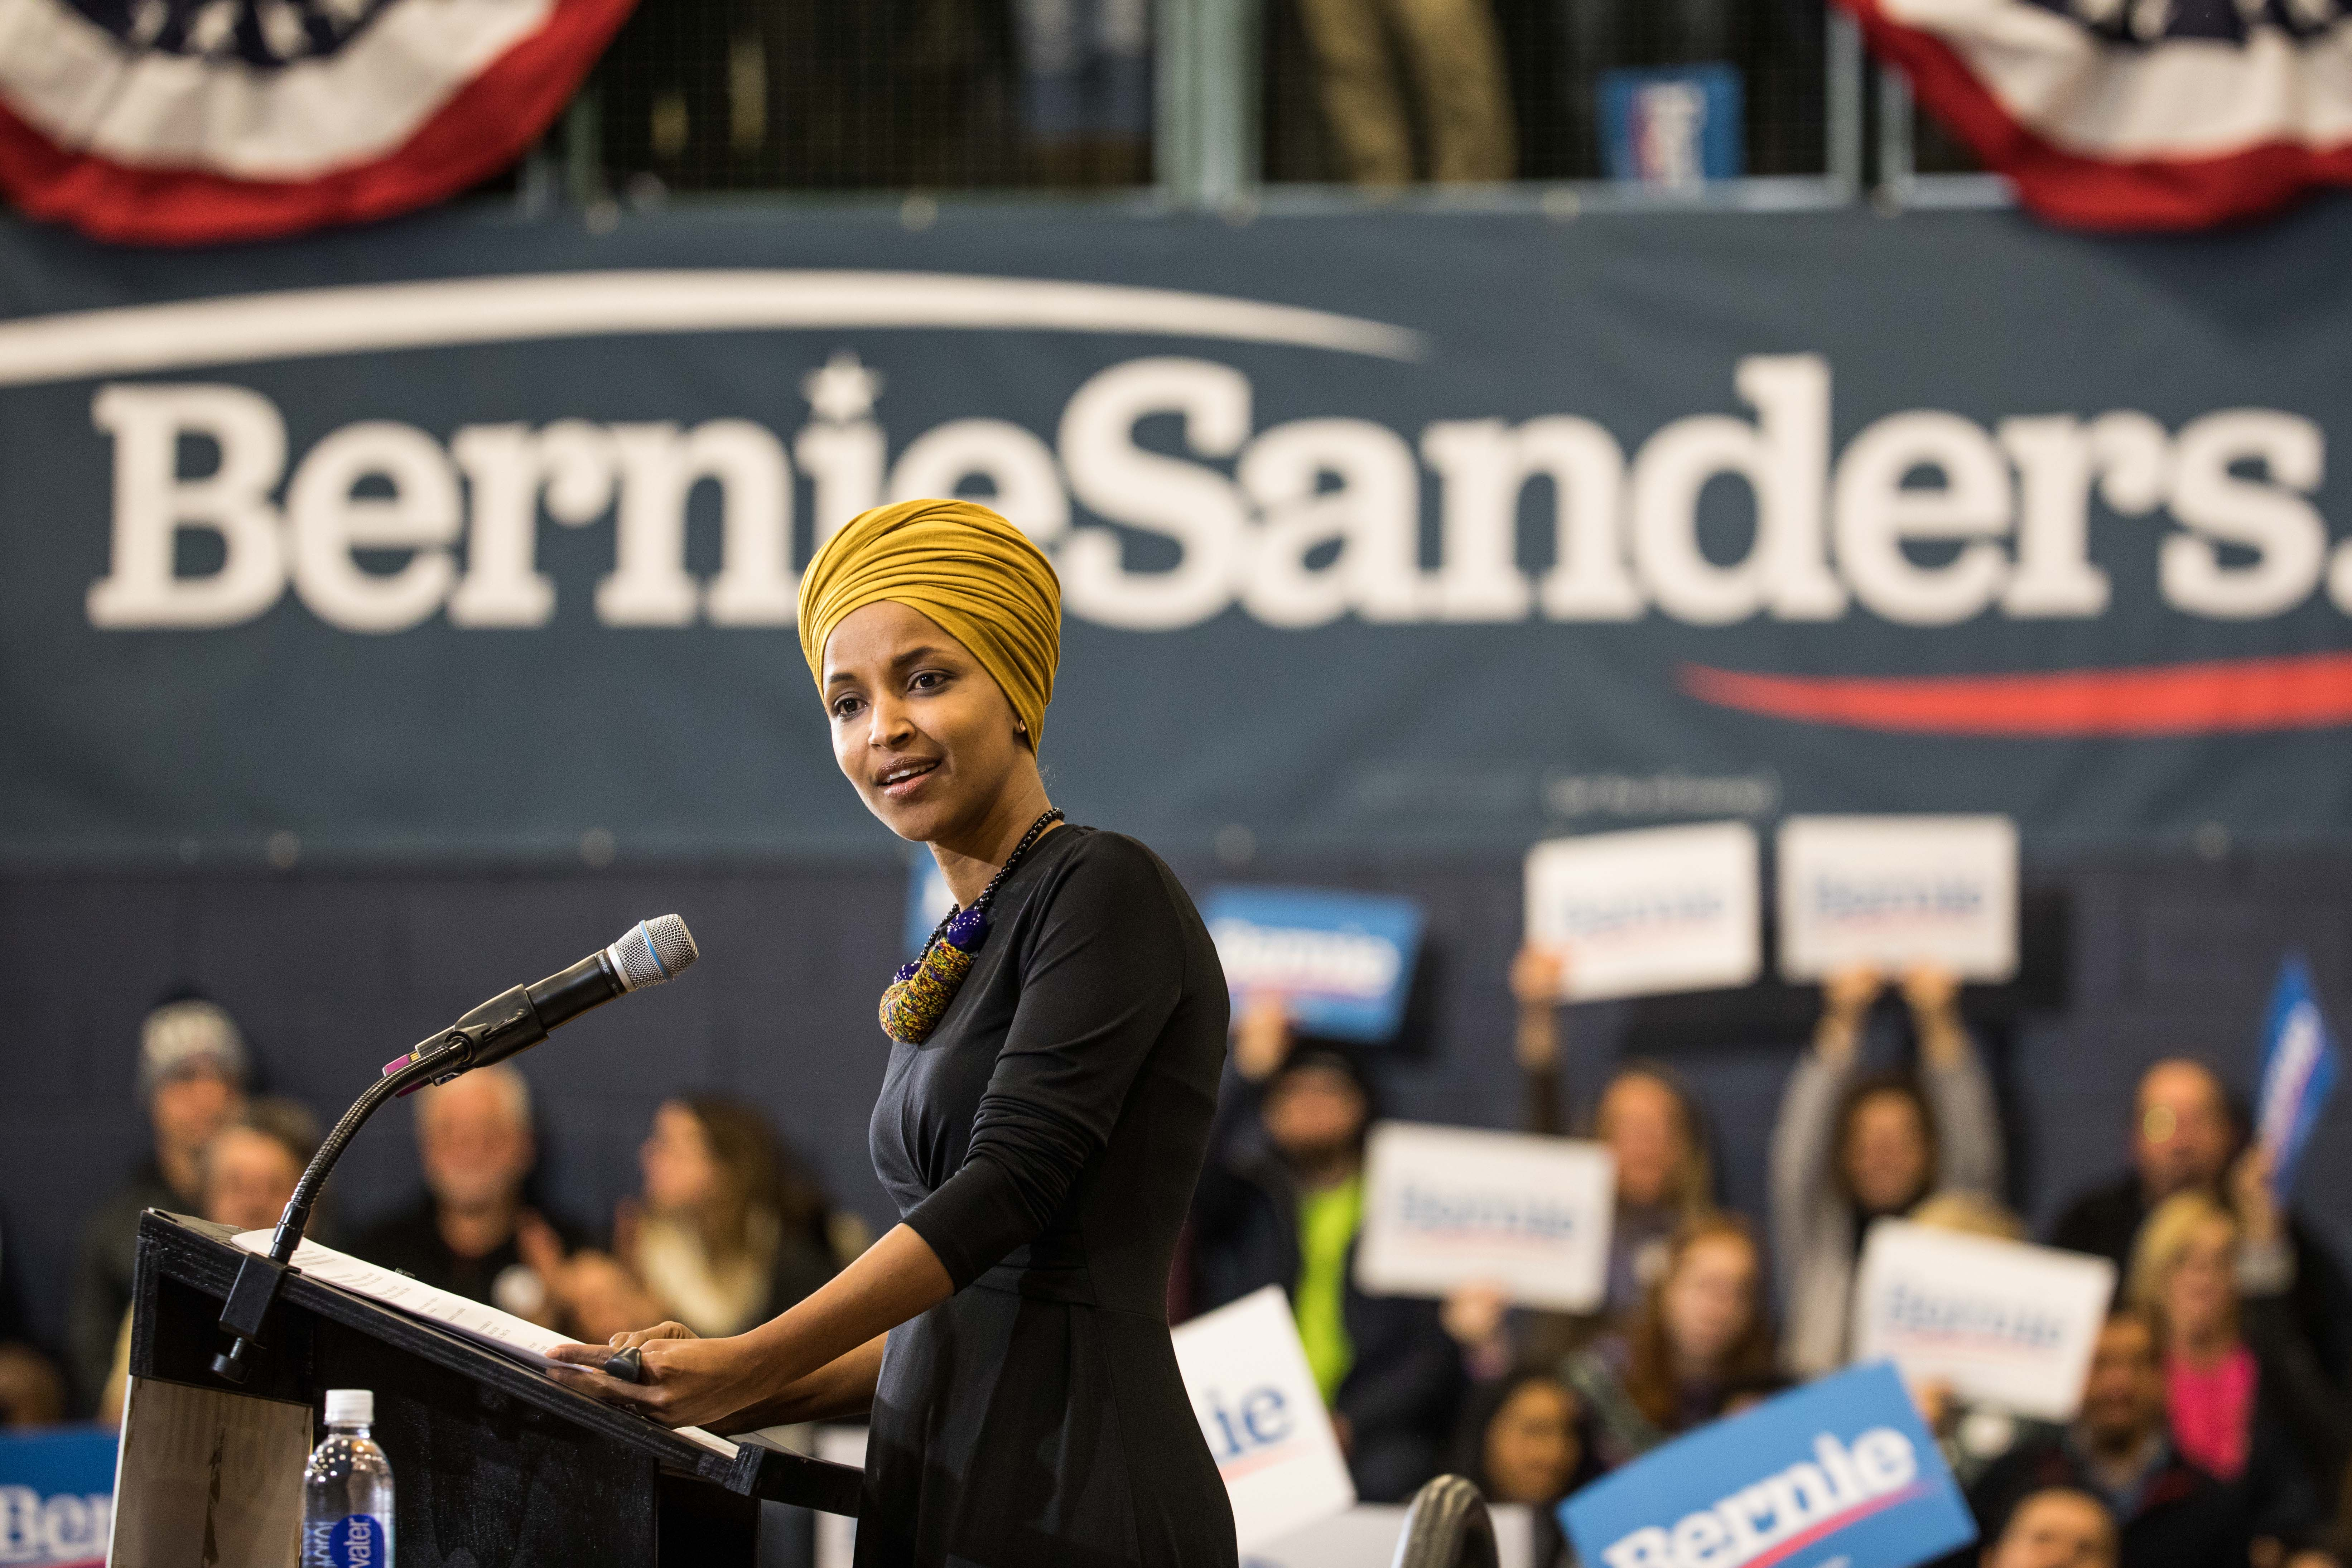 Democrat Infighting Continues: Ilhan Omar Implies Warren Should Drop Out to Help Sanders